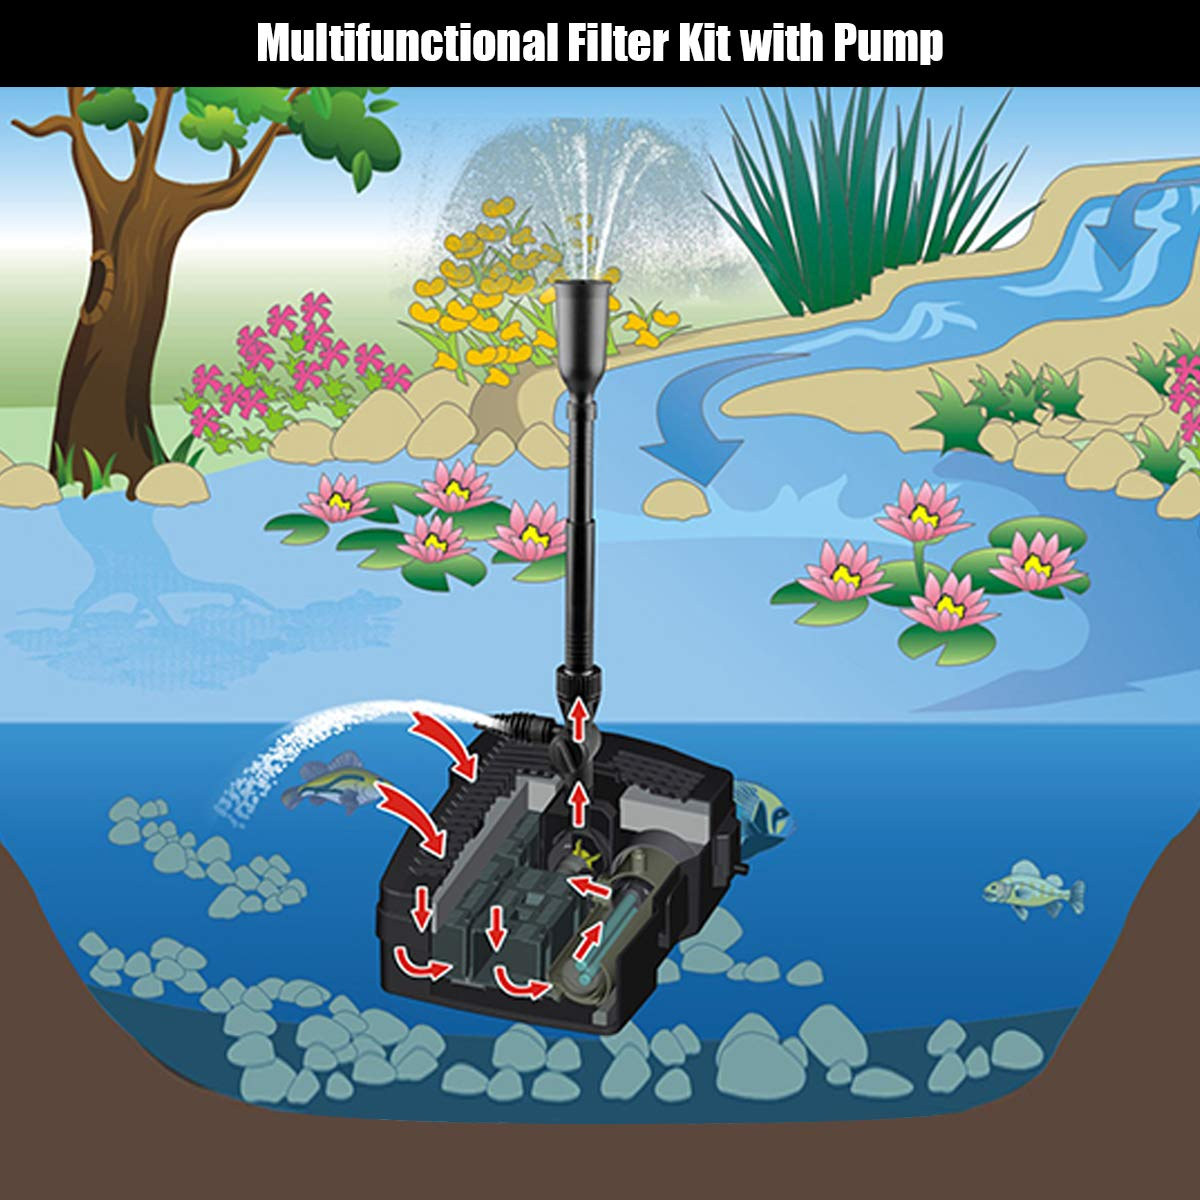 Goplus 4 in 1 Pond Filter Pump, 660 GPH Fountain Pump w/ 9-Watt Sterilizer and Fountain Jet, All-in-One Pond Cleaning System (Black)